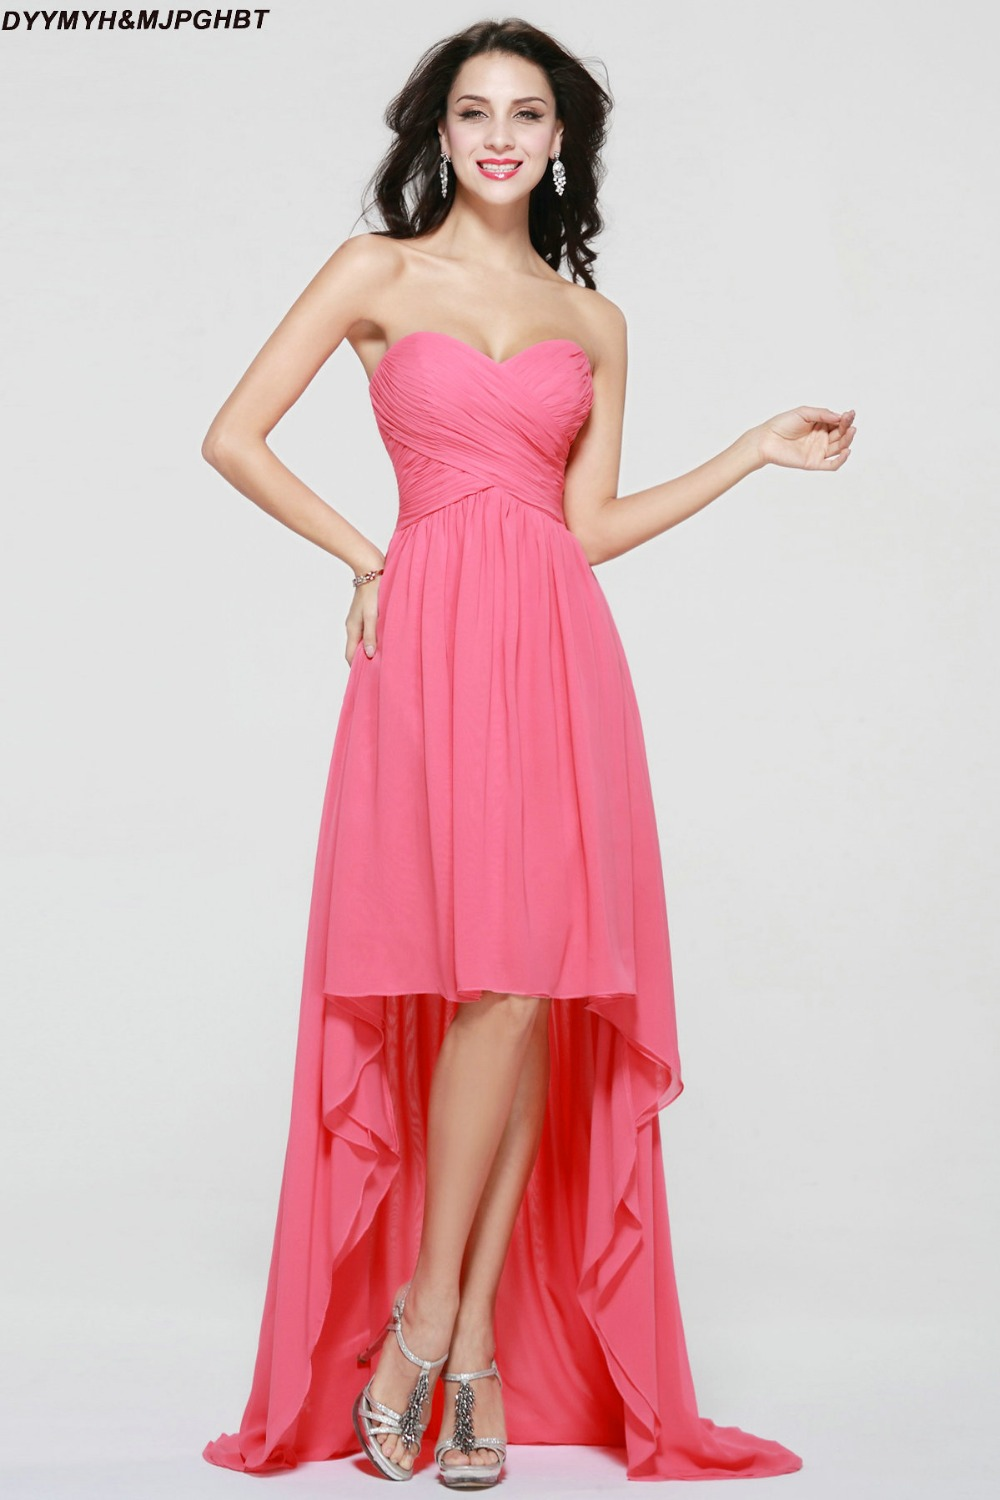 Fashionable short front and long back sweetheart pleat top fashionable short front and long back sweetheart pleat top asymmetrical hot pink bridesmaid dresses in bridesmaid dresses from weddings events on ombrellifo Image collections